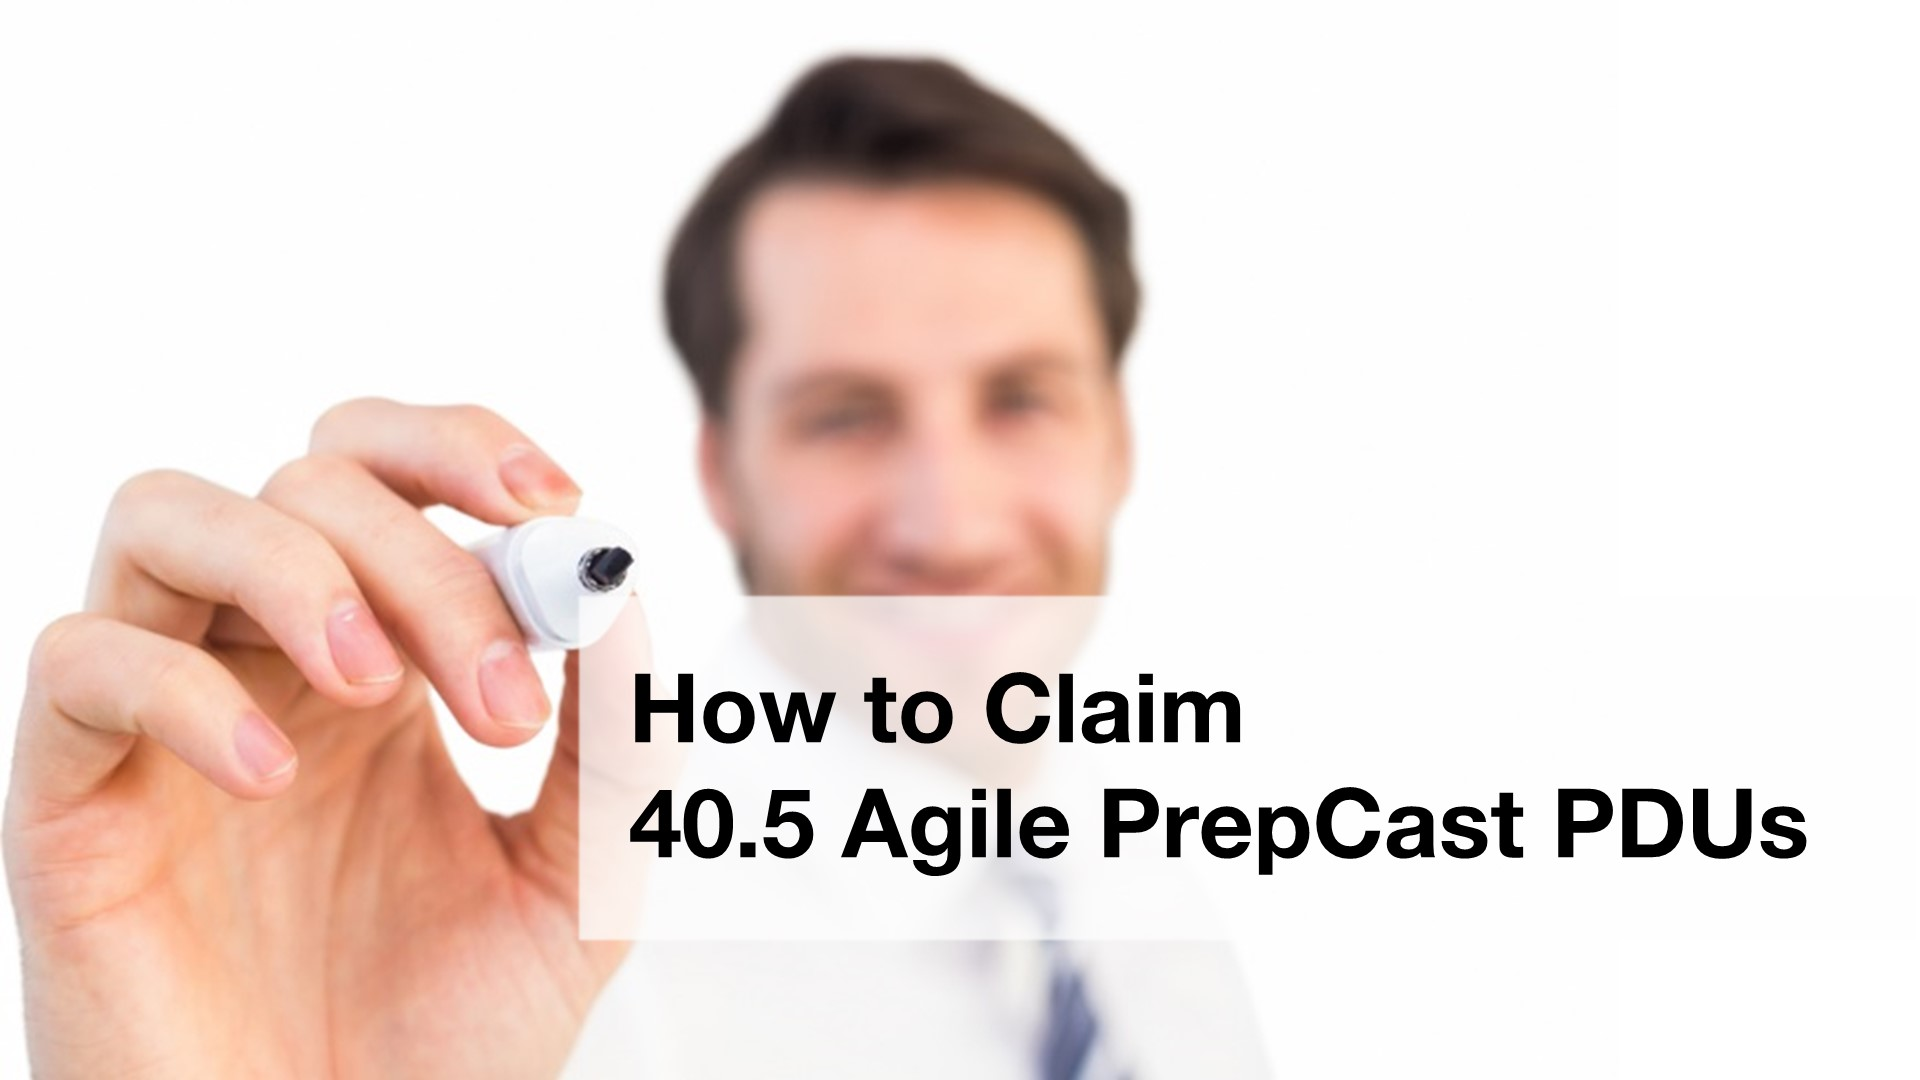 PDUs - How to Claim 40.5 Agile PrepCast PDUs